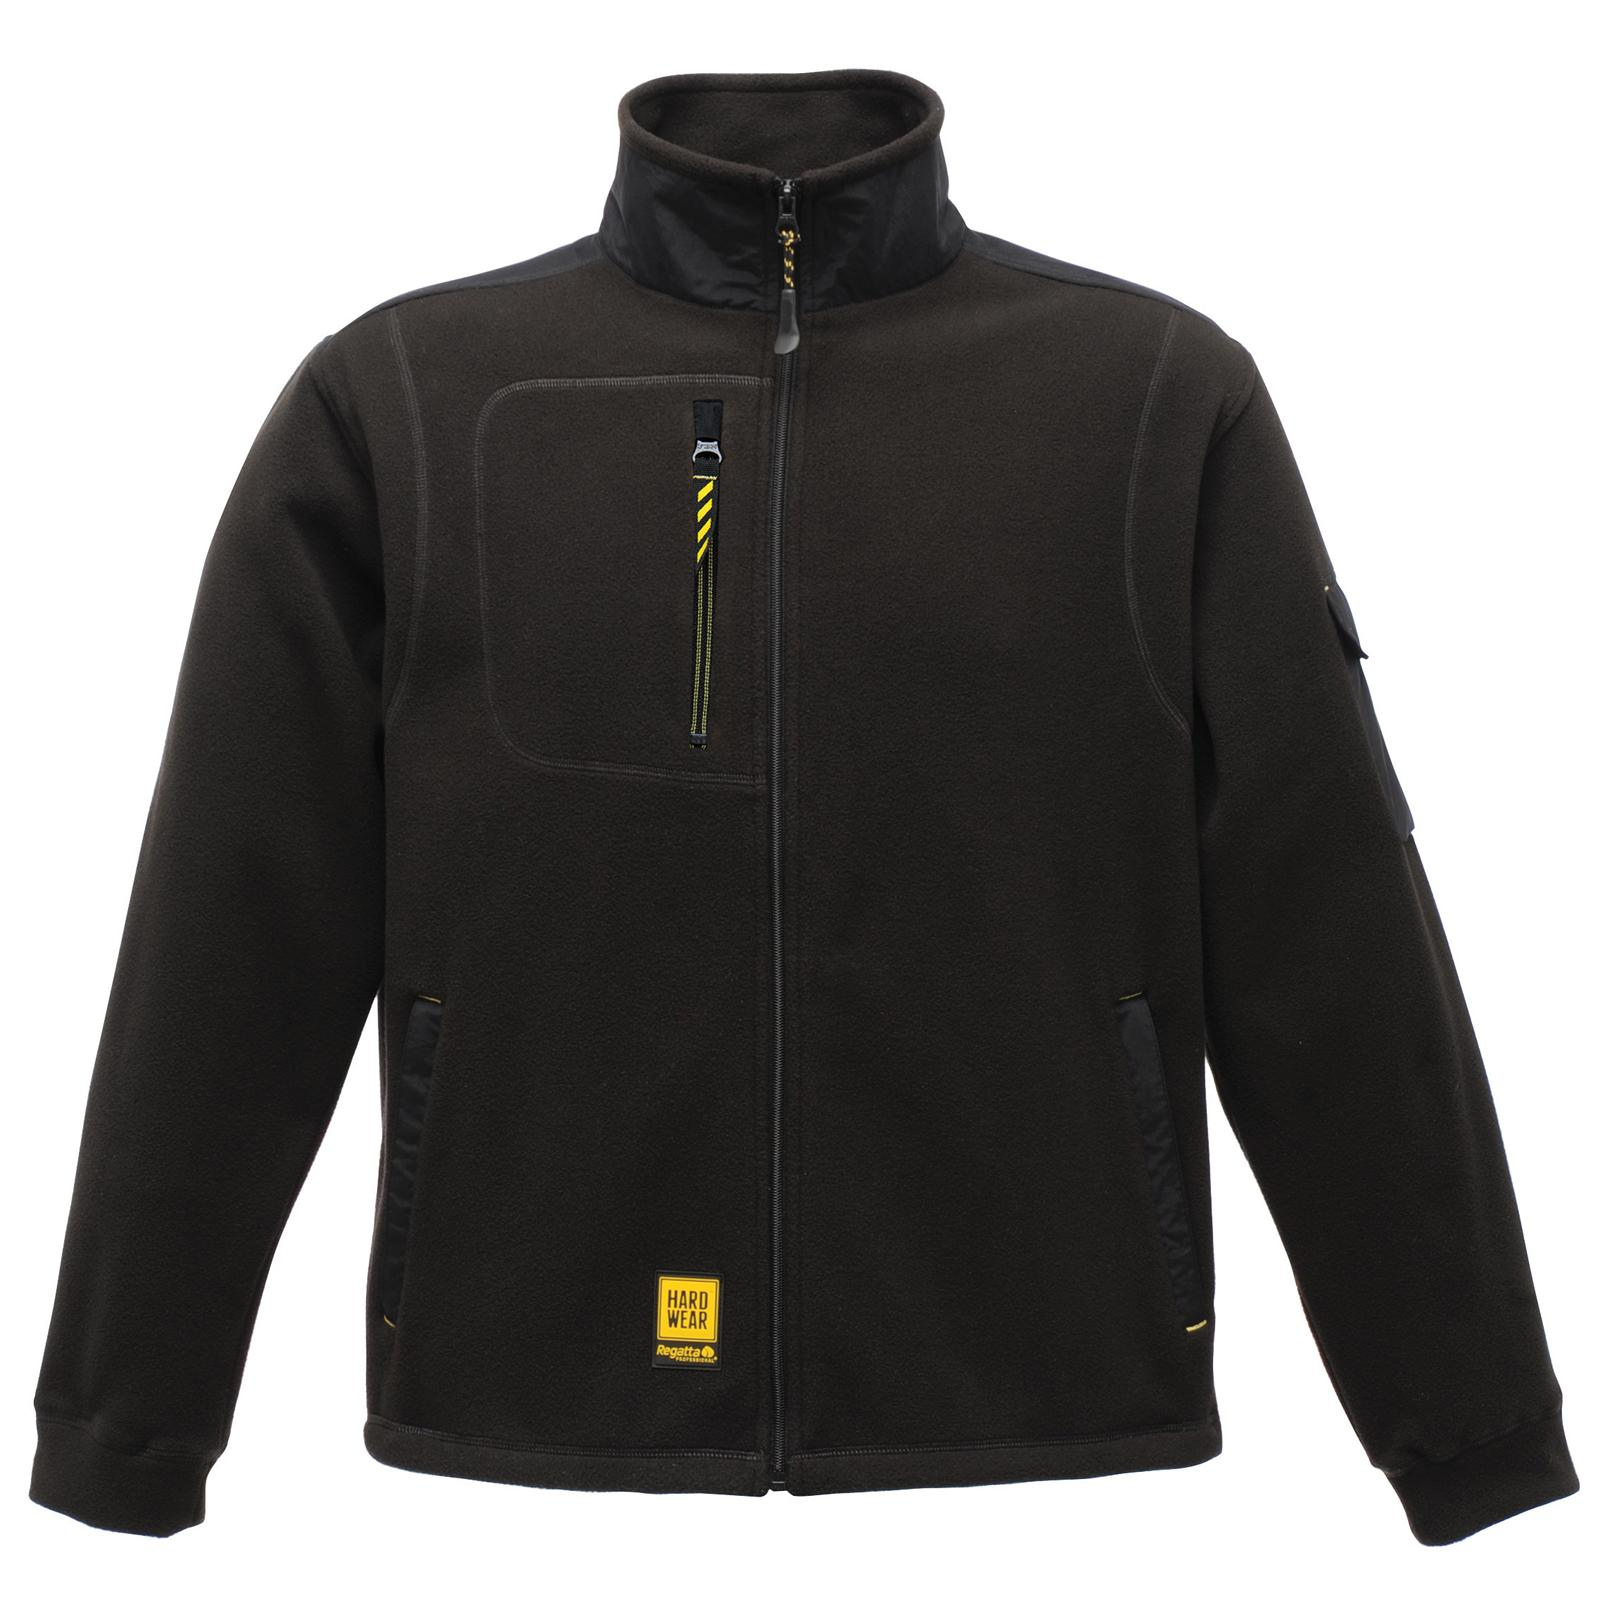 Mens Work Fleece Jackets - JacketIn